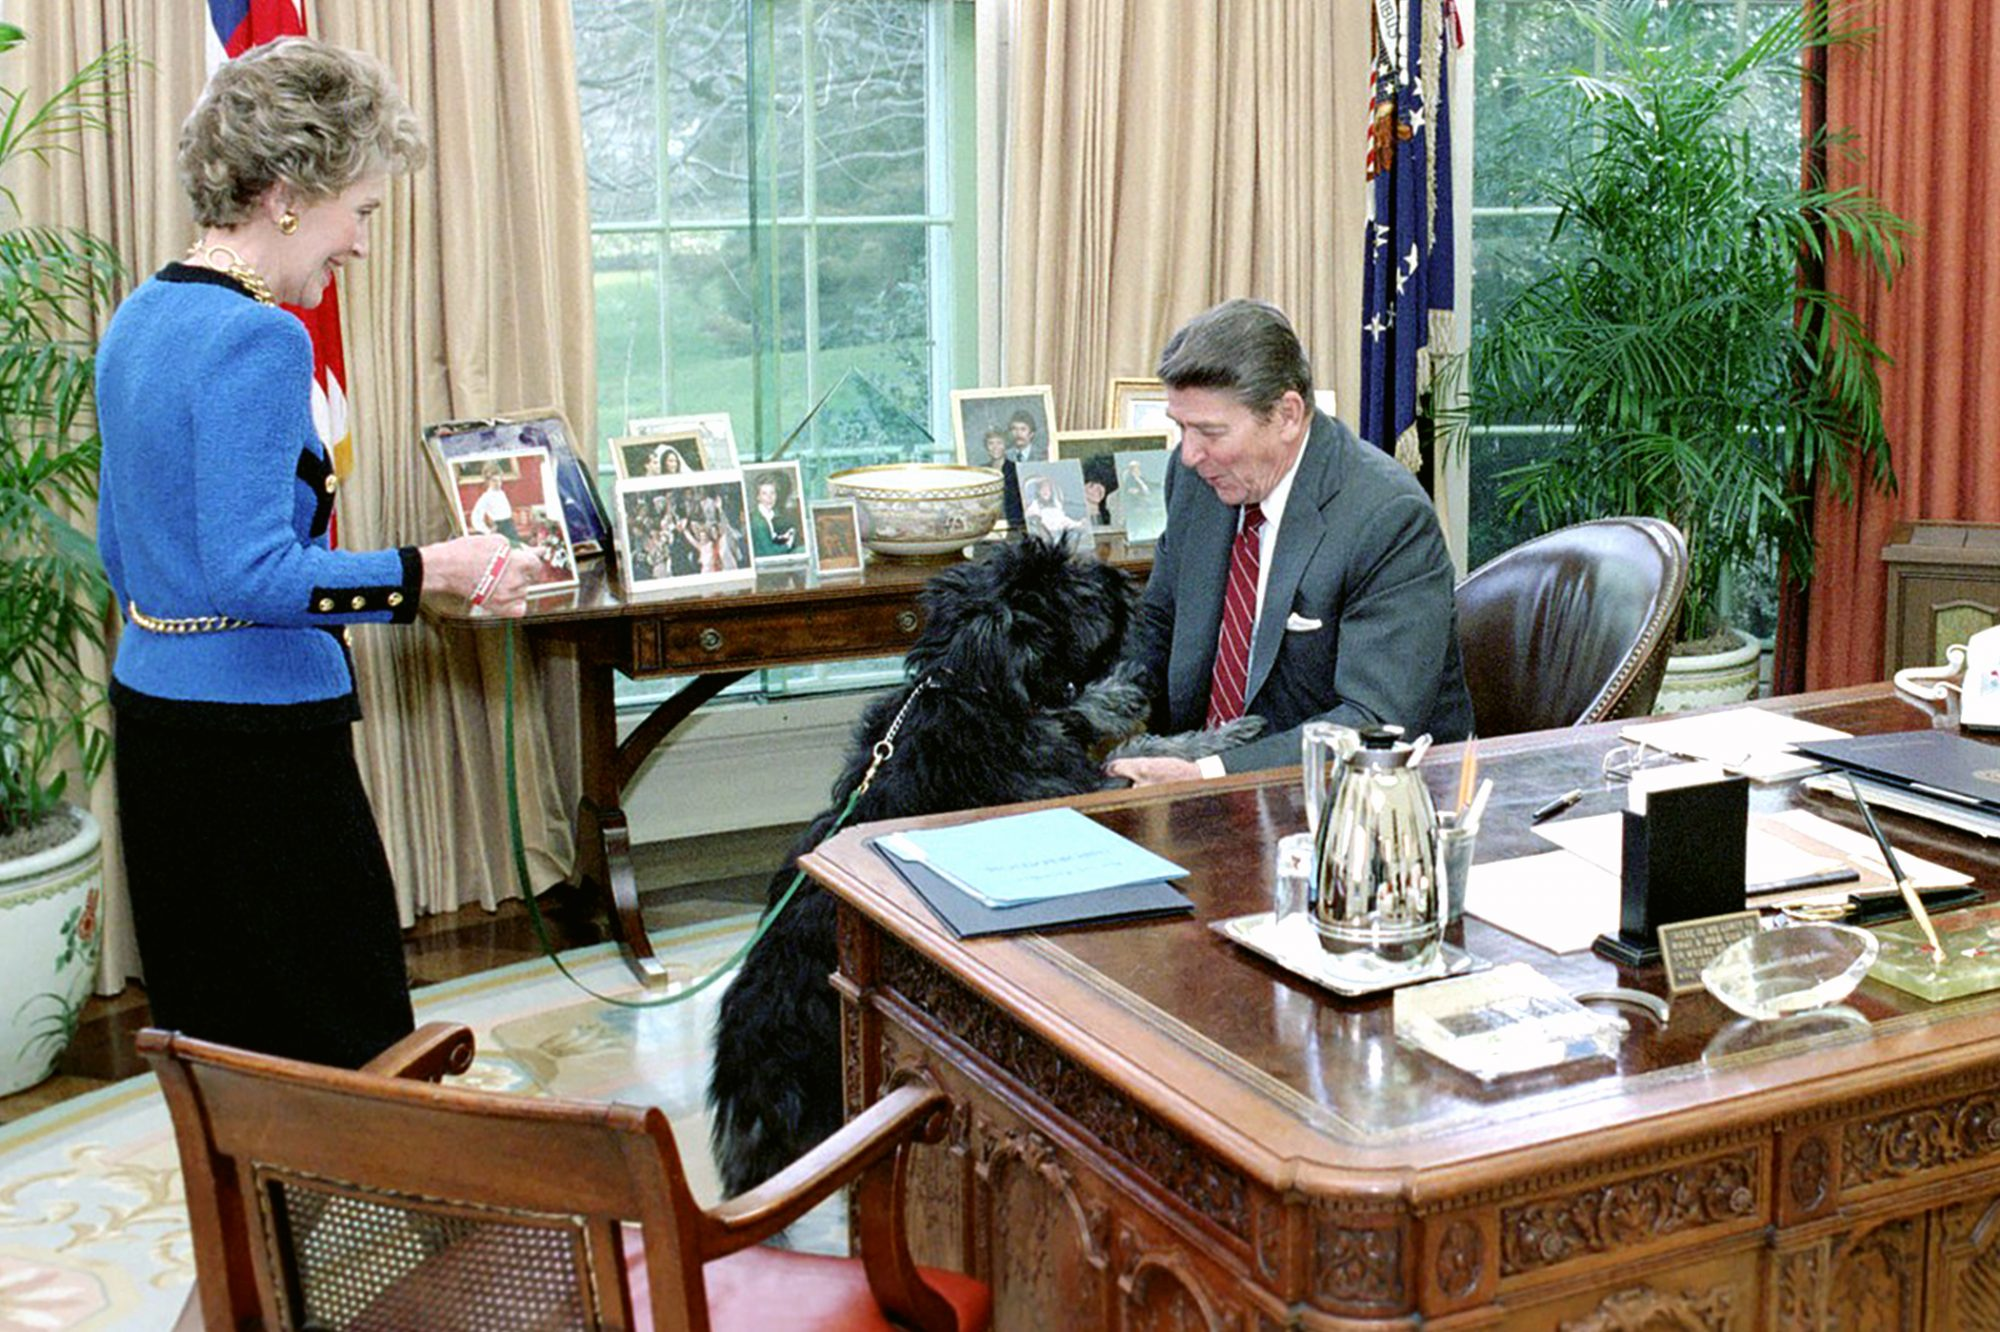 Photo of Ronald Reagan embracing a black dog in the Oval Office